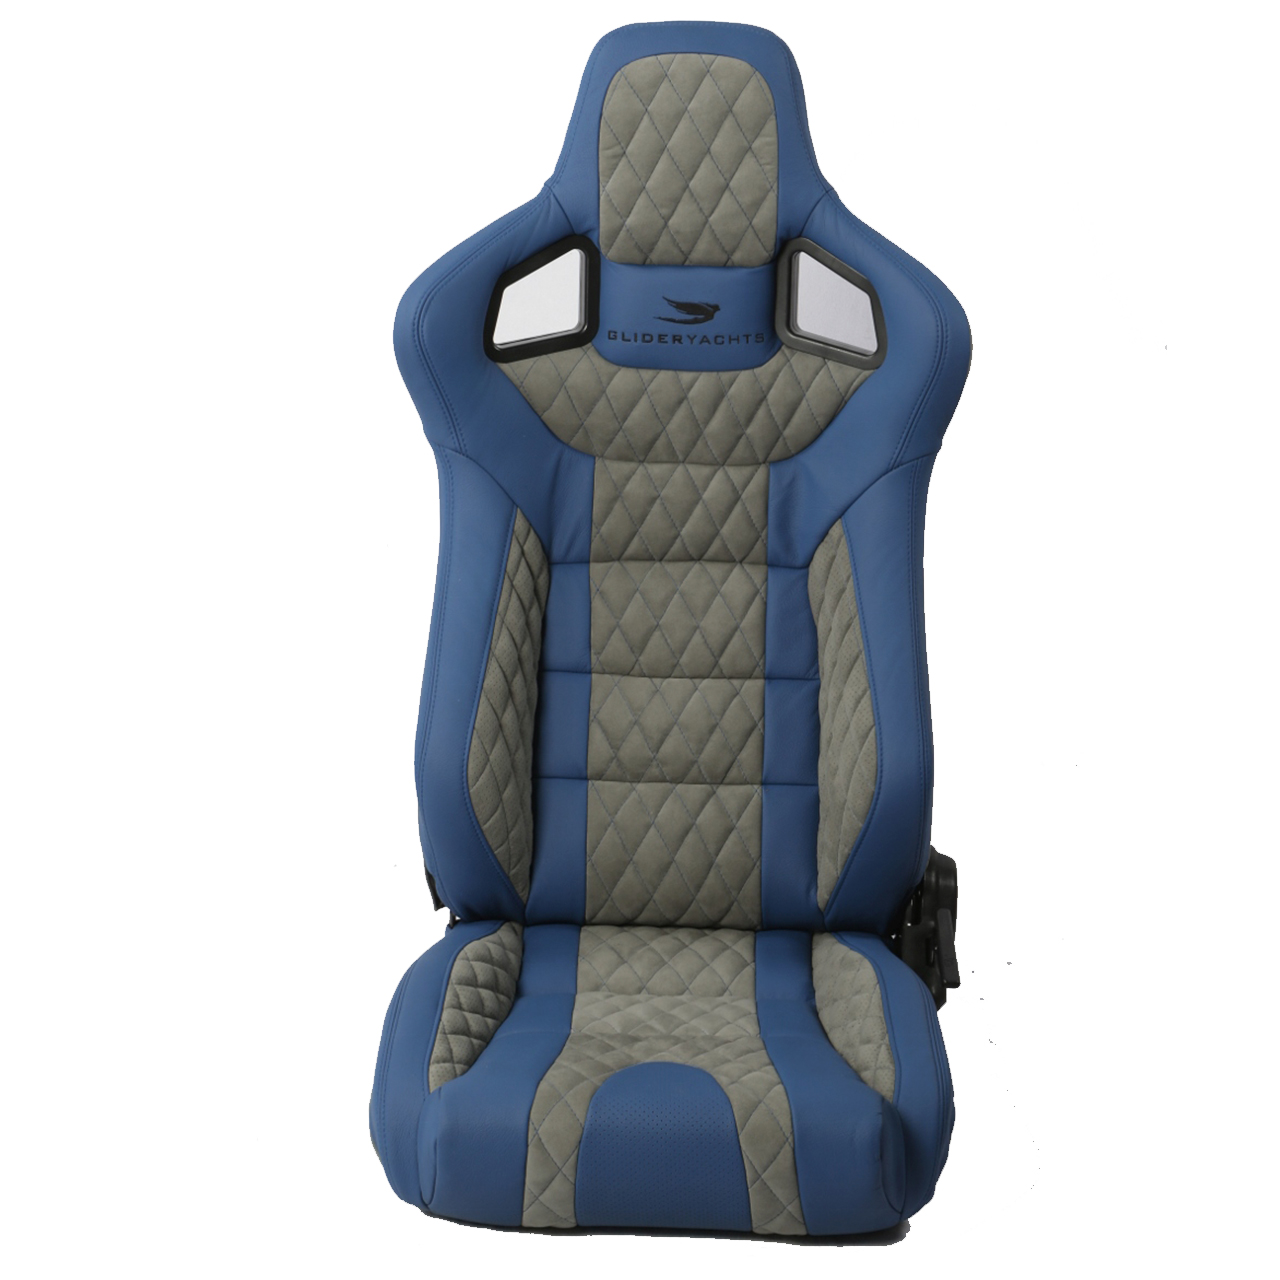 Corbeau Sportline RRS Reclining Bucket Seat in Blue/Grey Custom Elite Upgrade